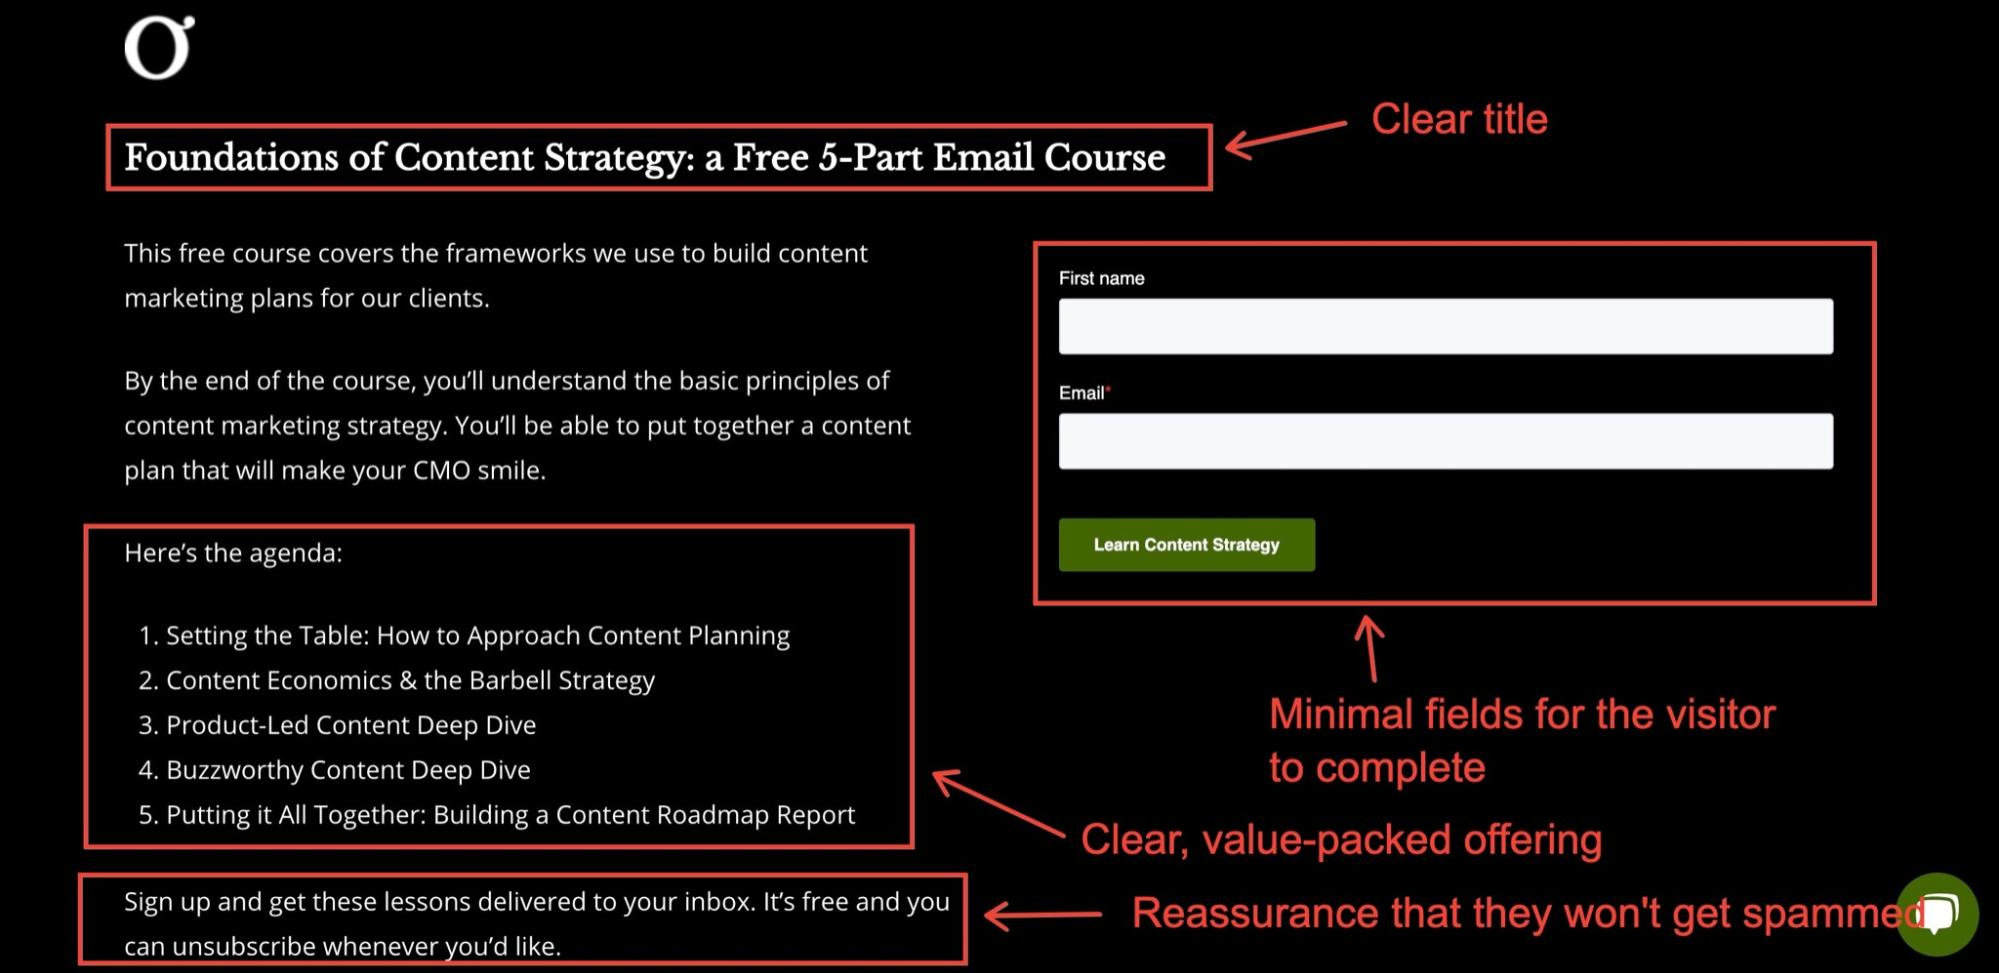 Example of an email course used as a lead magnet